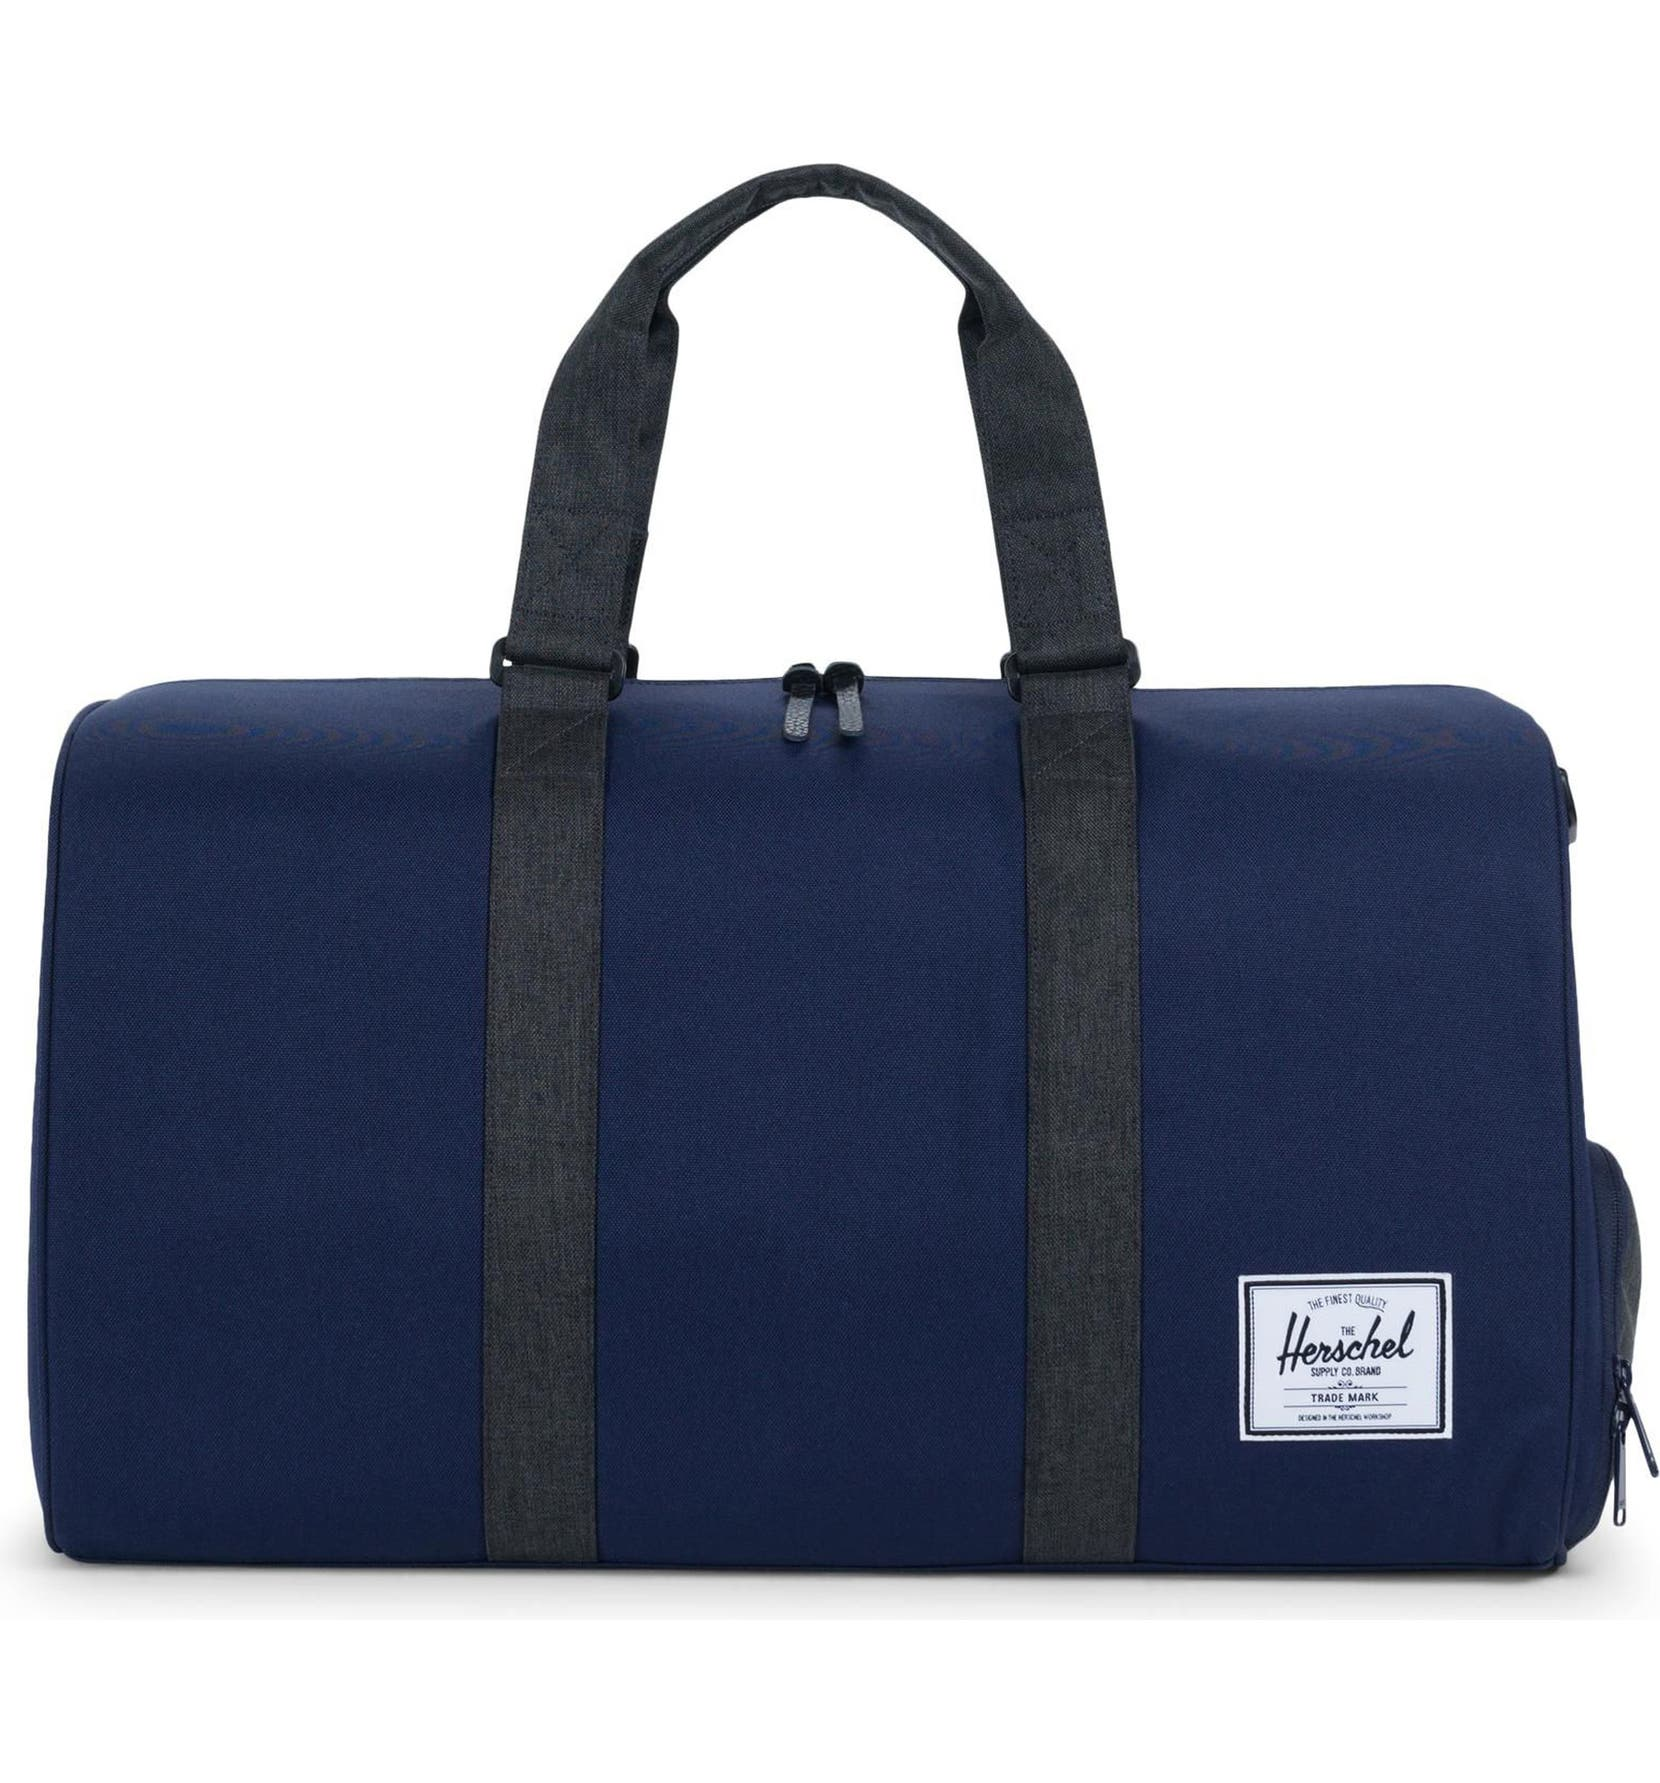 270540c97a91 Herschel Supply Co.  Novel  Duffel Bag